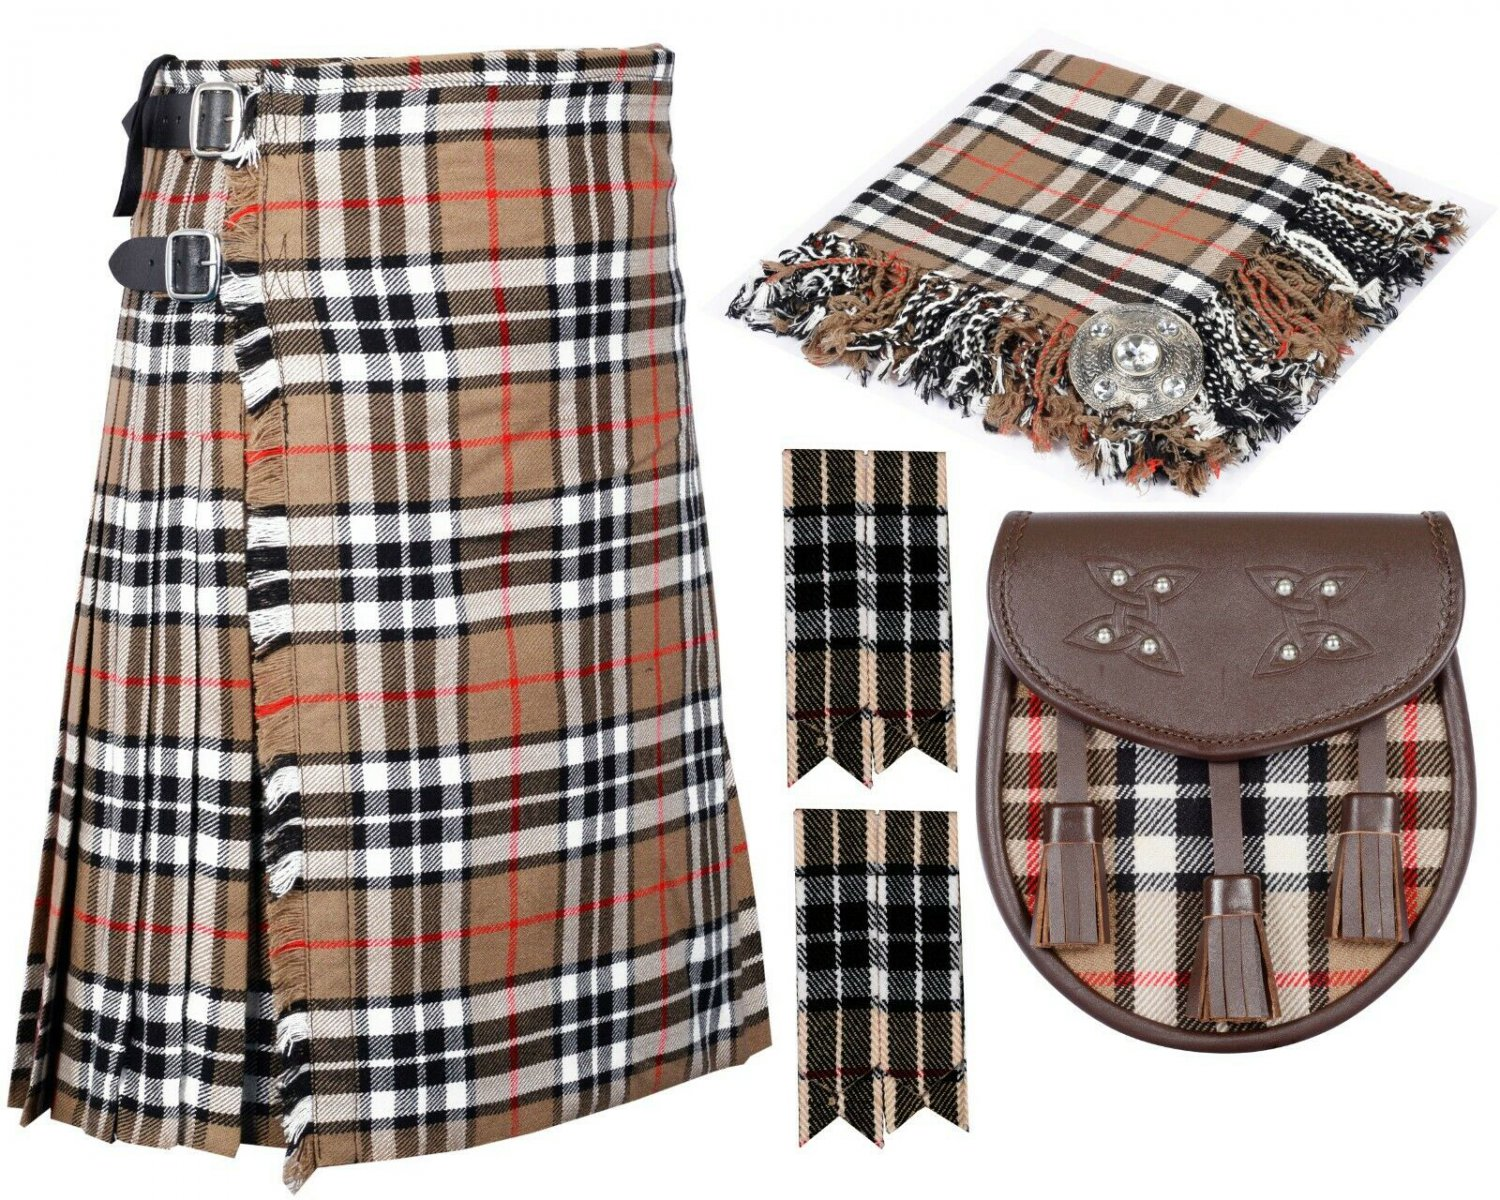 60 Inches Waist 8 Yard Traditional Scottish Tartan Kilt with Accessories - Campbell of Thompson